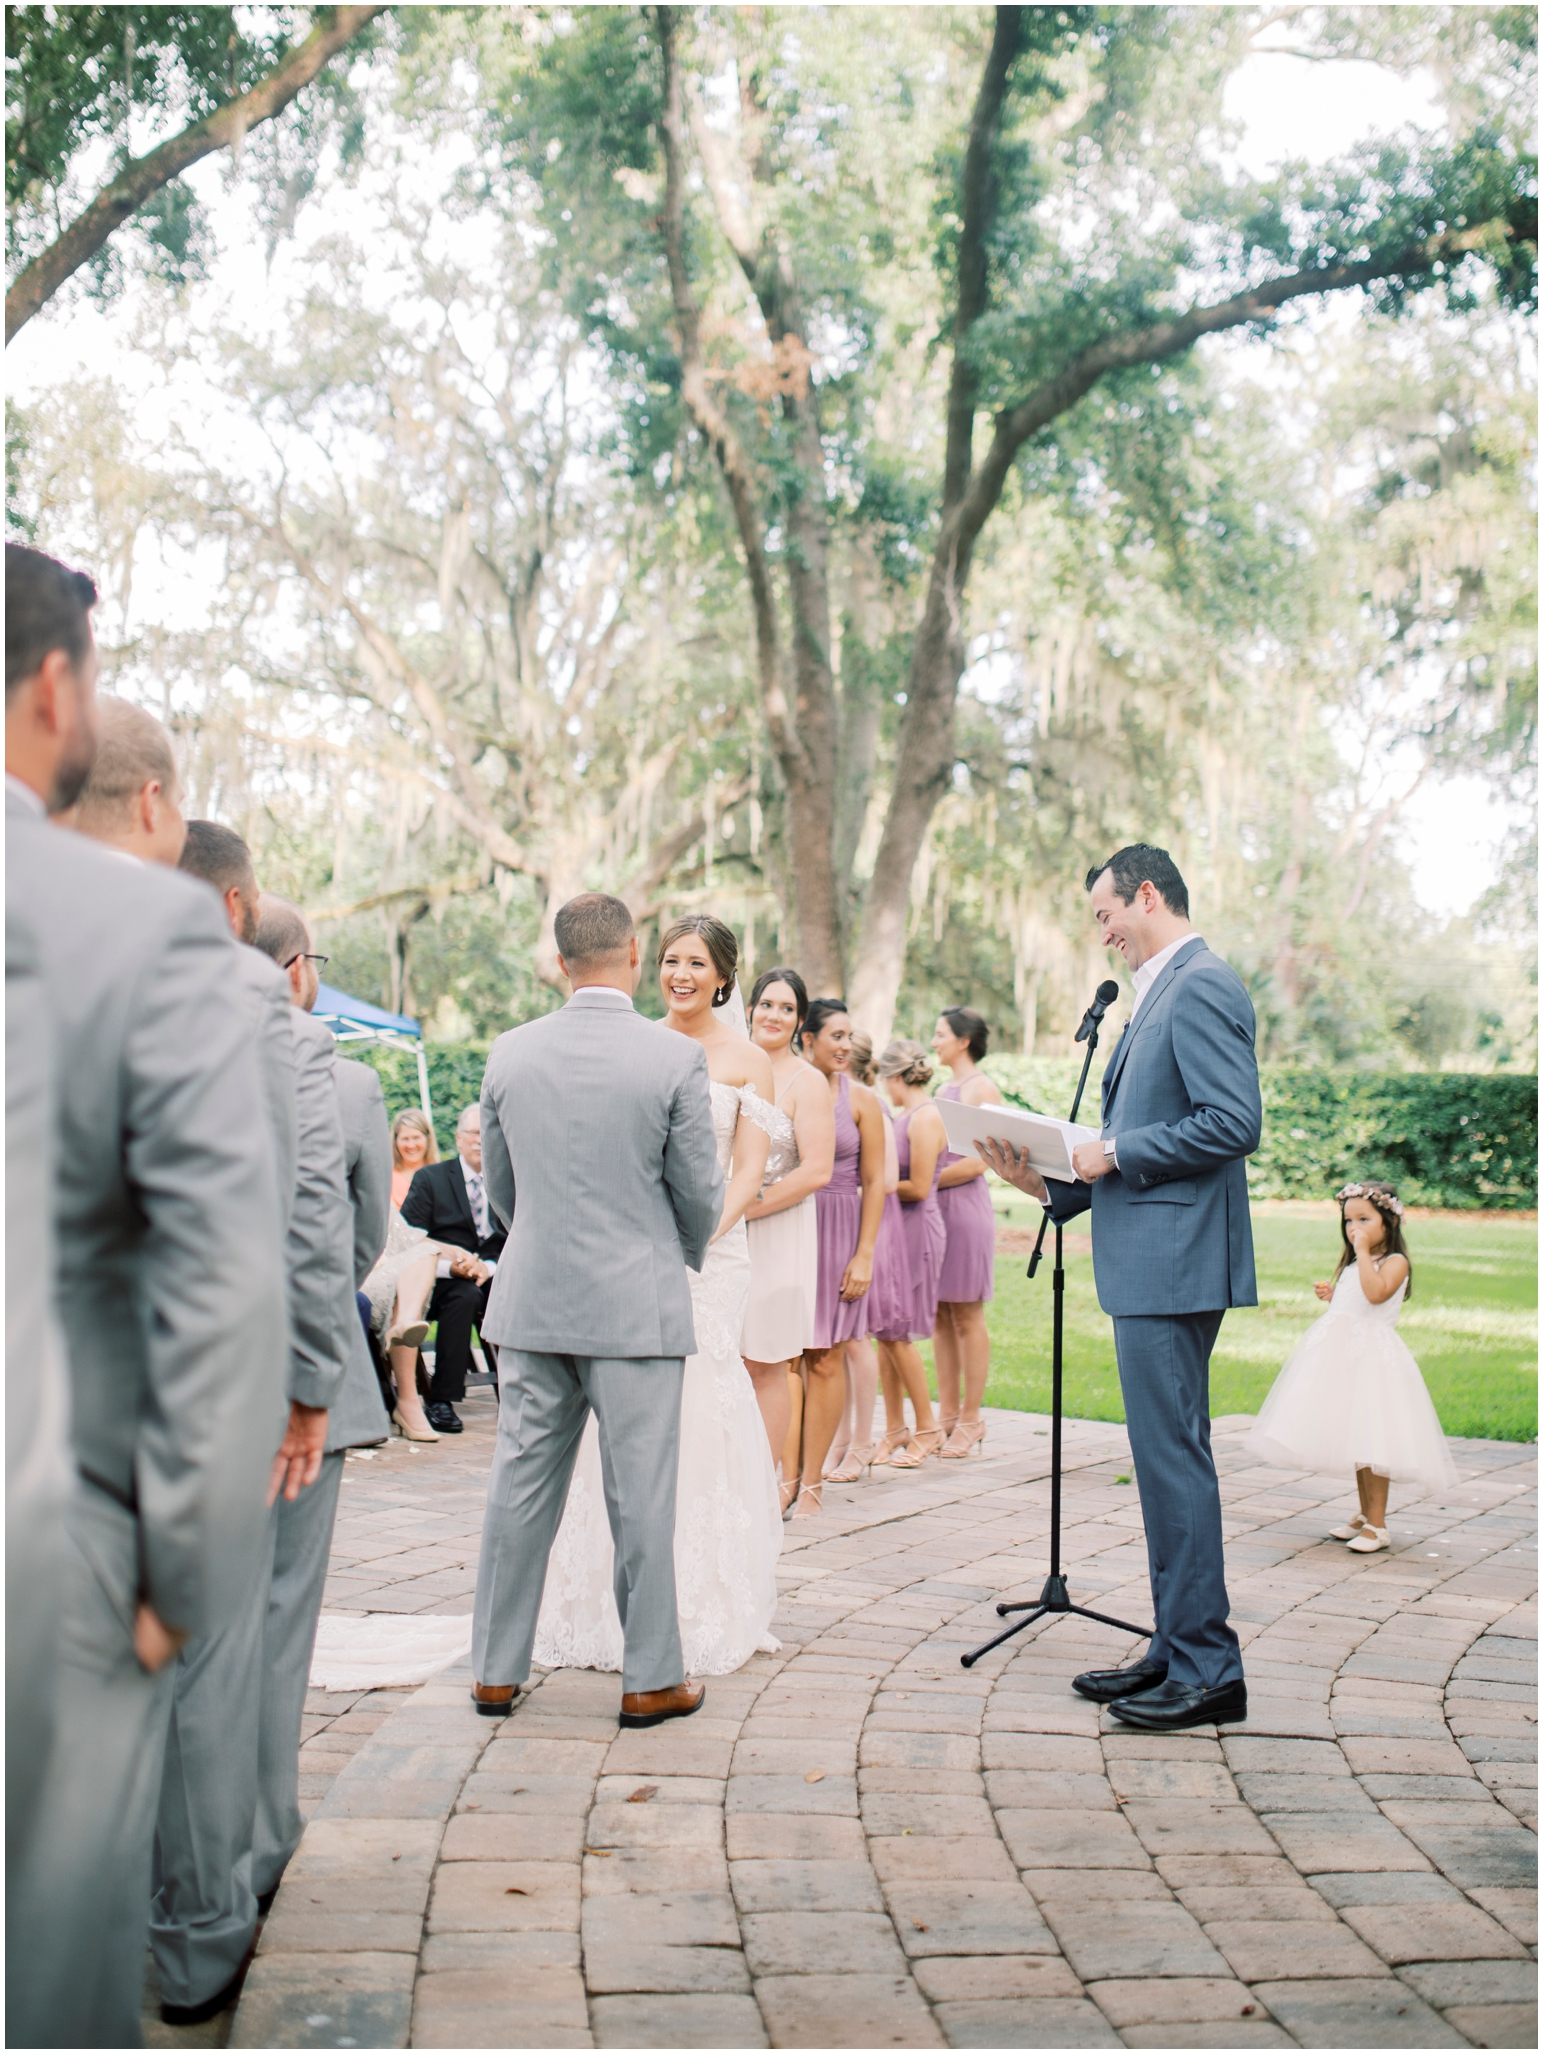 Lisa Silva Photography- Jacksonville, St Augustine, Fernandina Beach, Amelia Island, Ponte Vedra Beach, North East Florida Fine Art Film Photographer- Ashley and Shawn's wedding at bowing oaks plantation_0066.jpg